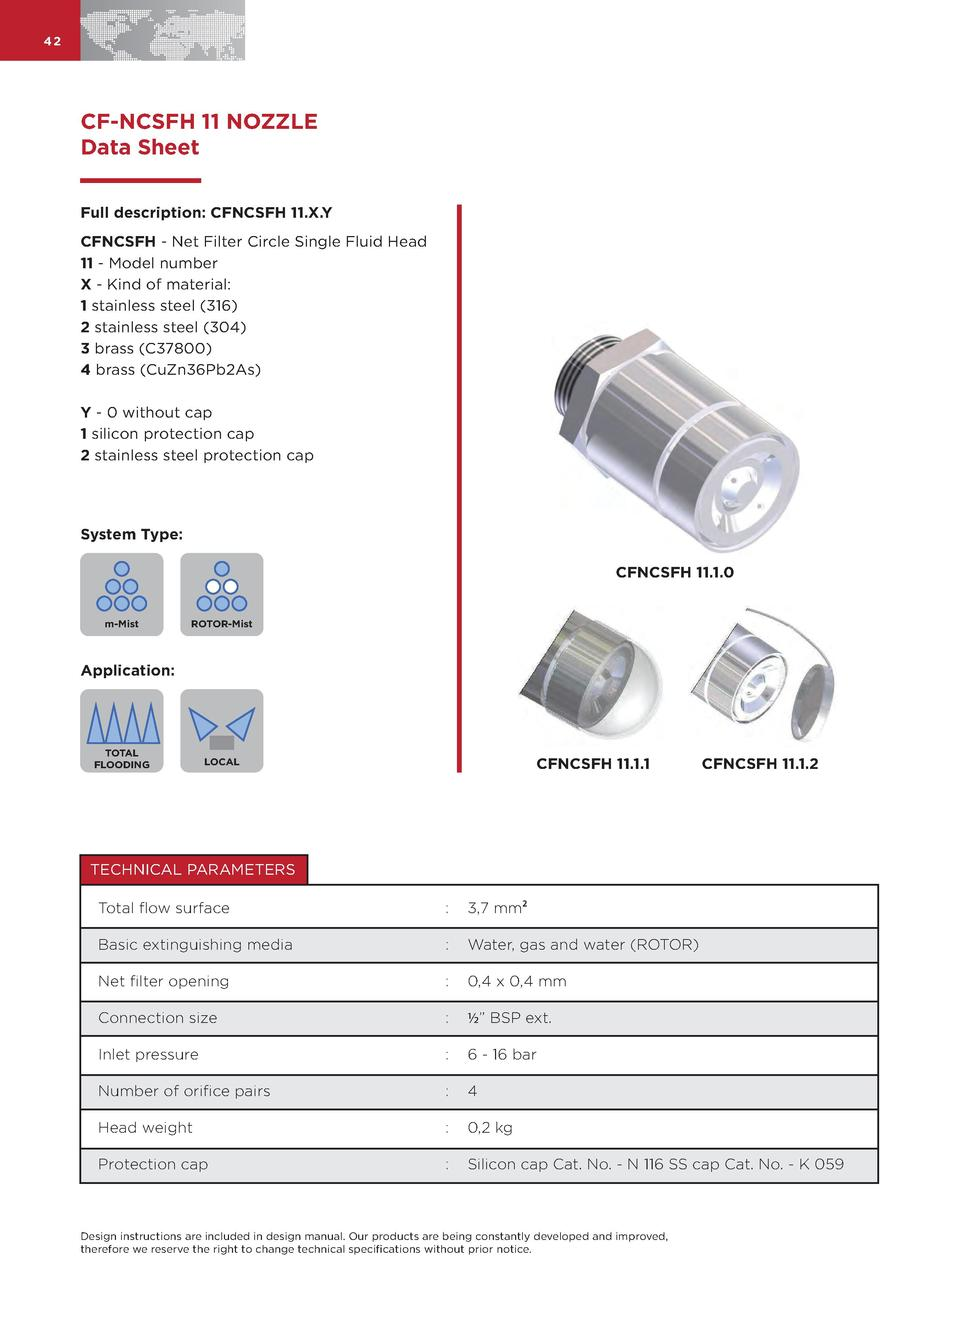 42  CF-NCSFH 11 NOZZLE Data Sheet Full description  CFNCSFH 11.X.Y CFNCSFH - Net Filter Circle Single Fluid Head 11 - Mode...